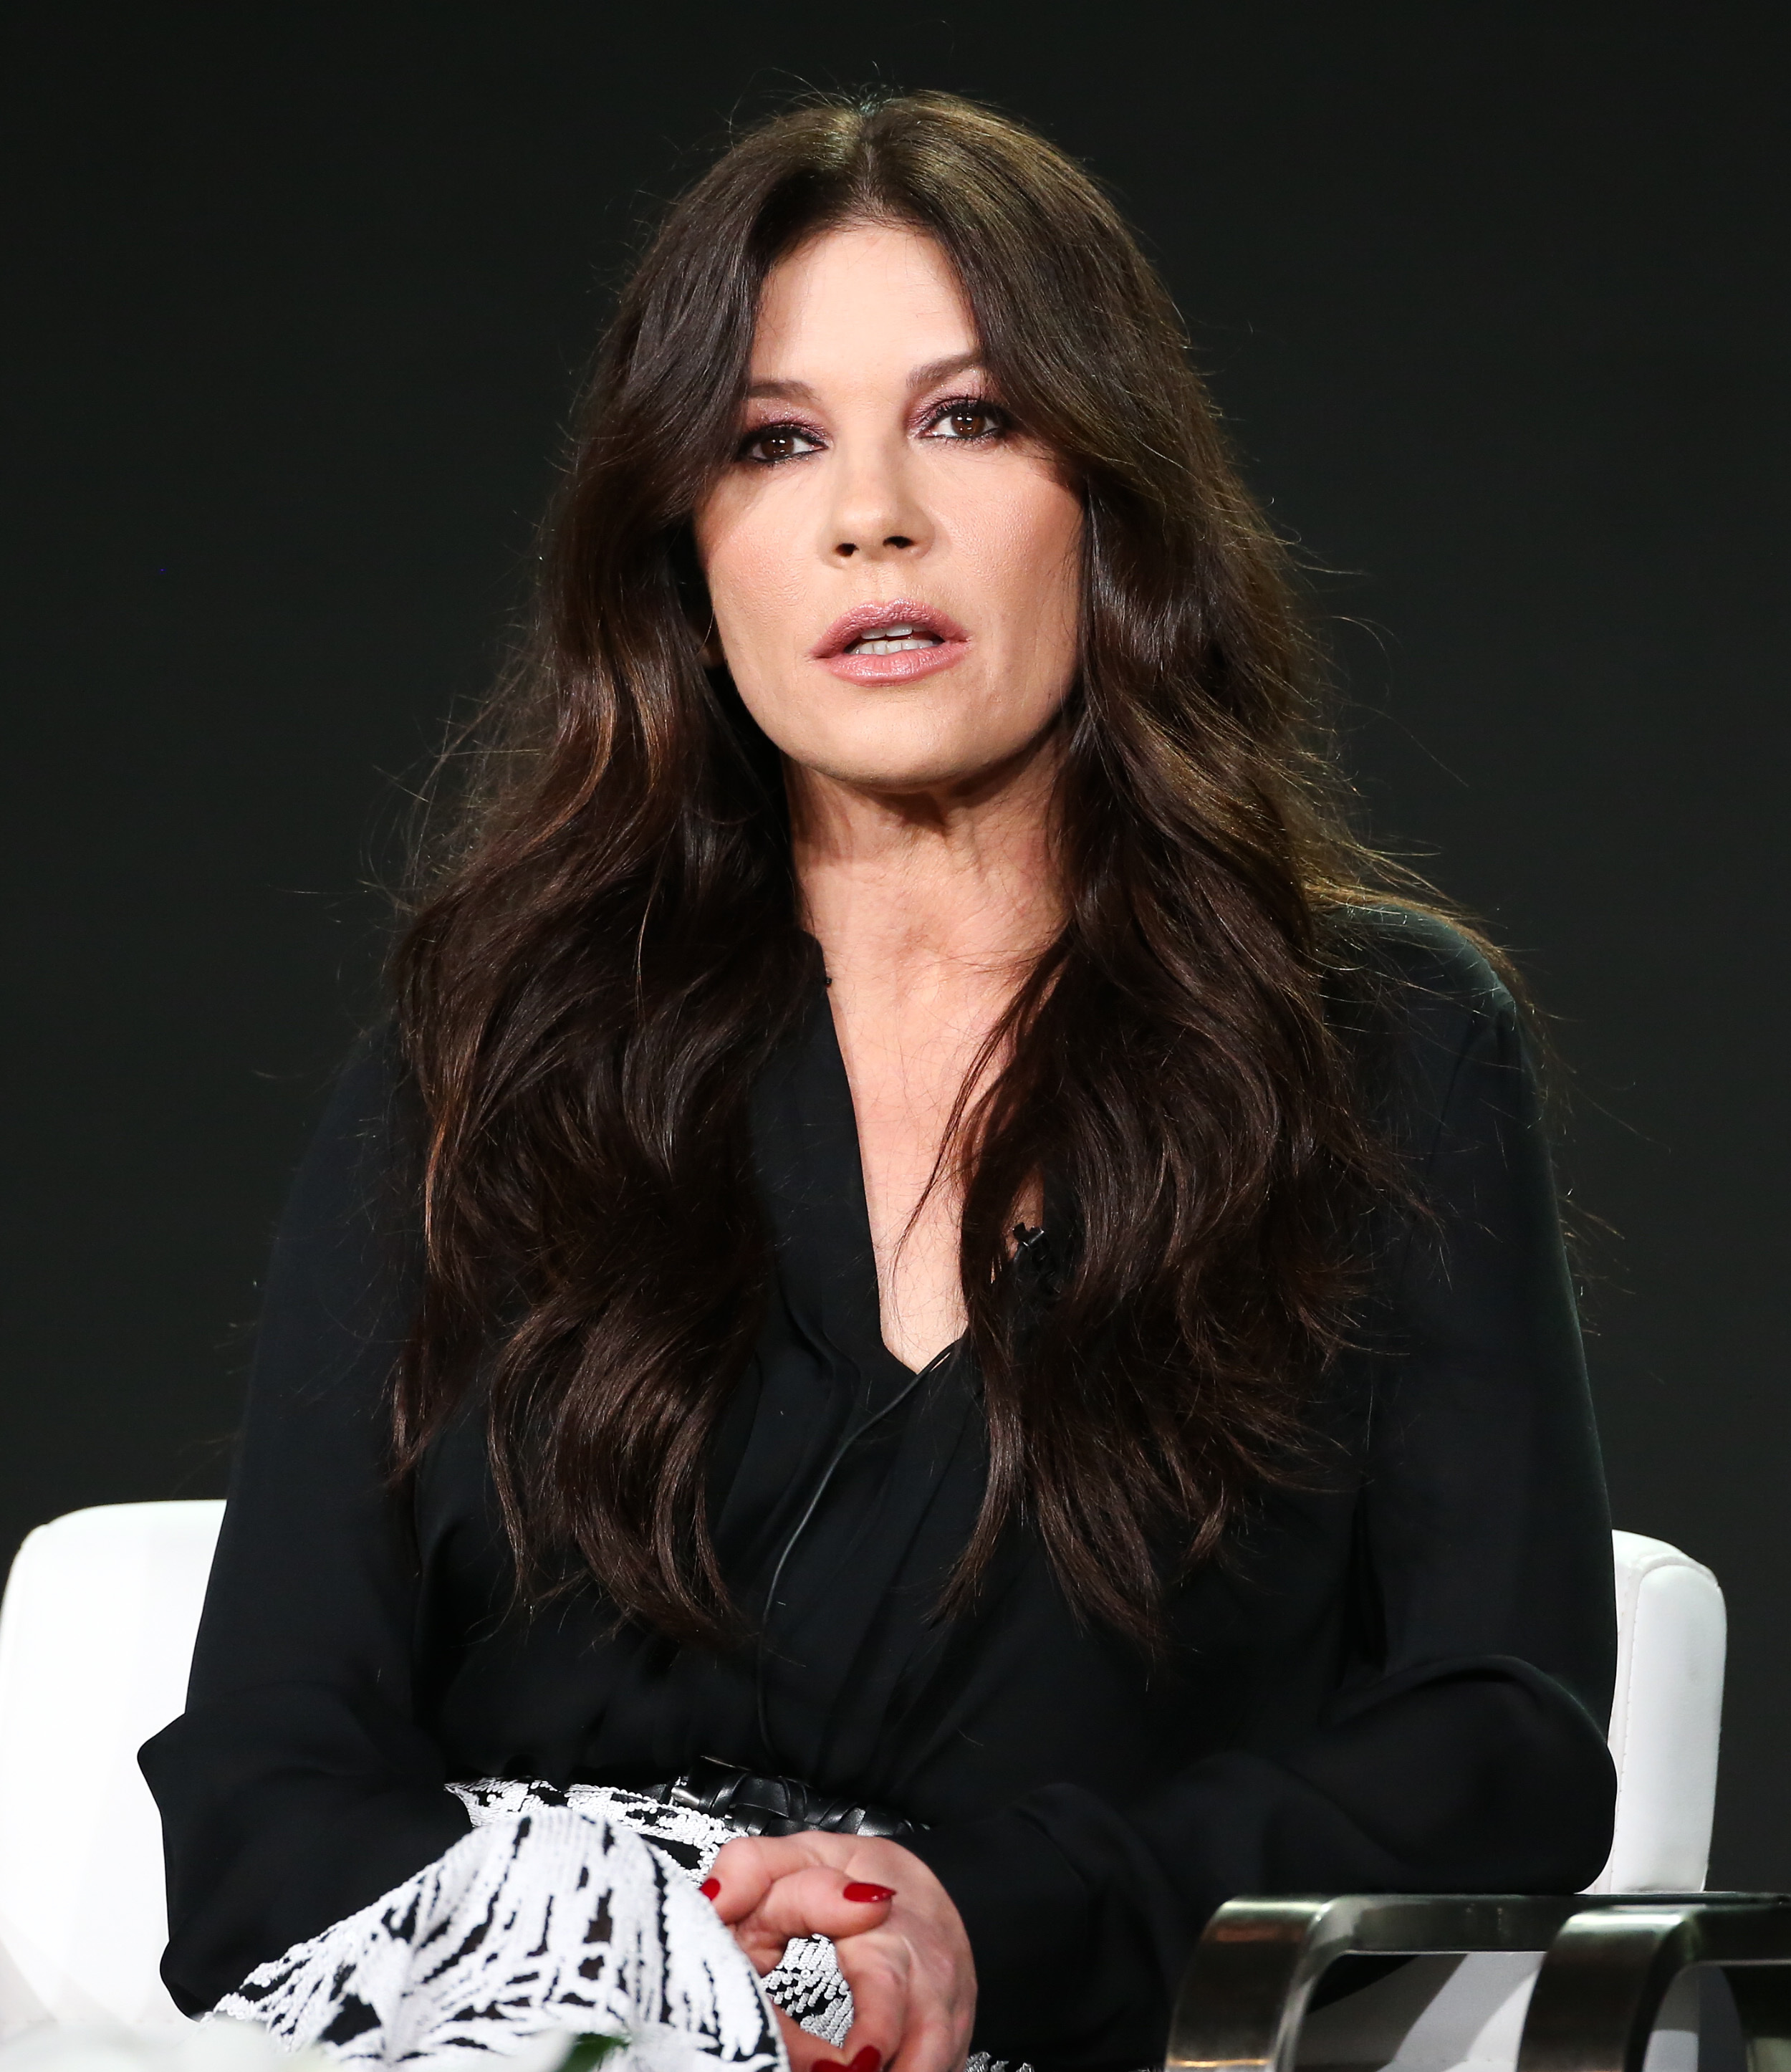 """Catherine Zeta Jones appears at the Lifetime """"Cocaine Godmother: The Griselda Blanco Story"""" TV show panel during the TCA Winter Press Tour in Los Angeles on Jan. 14, 2018."""